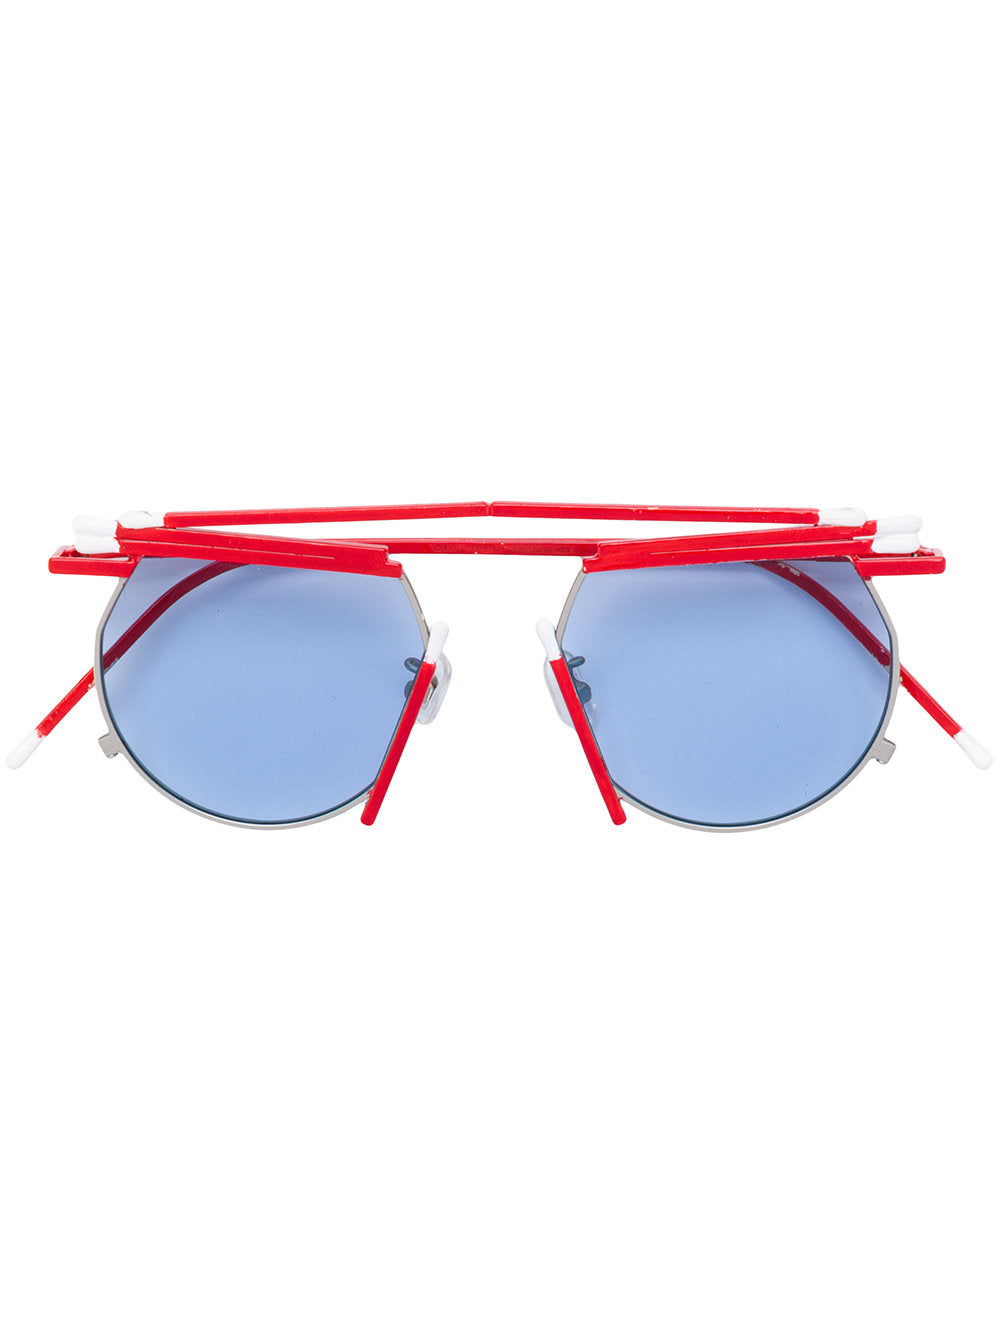 Henrik Vibskov x Gentle Monster red white match sunglasses - 1